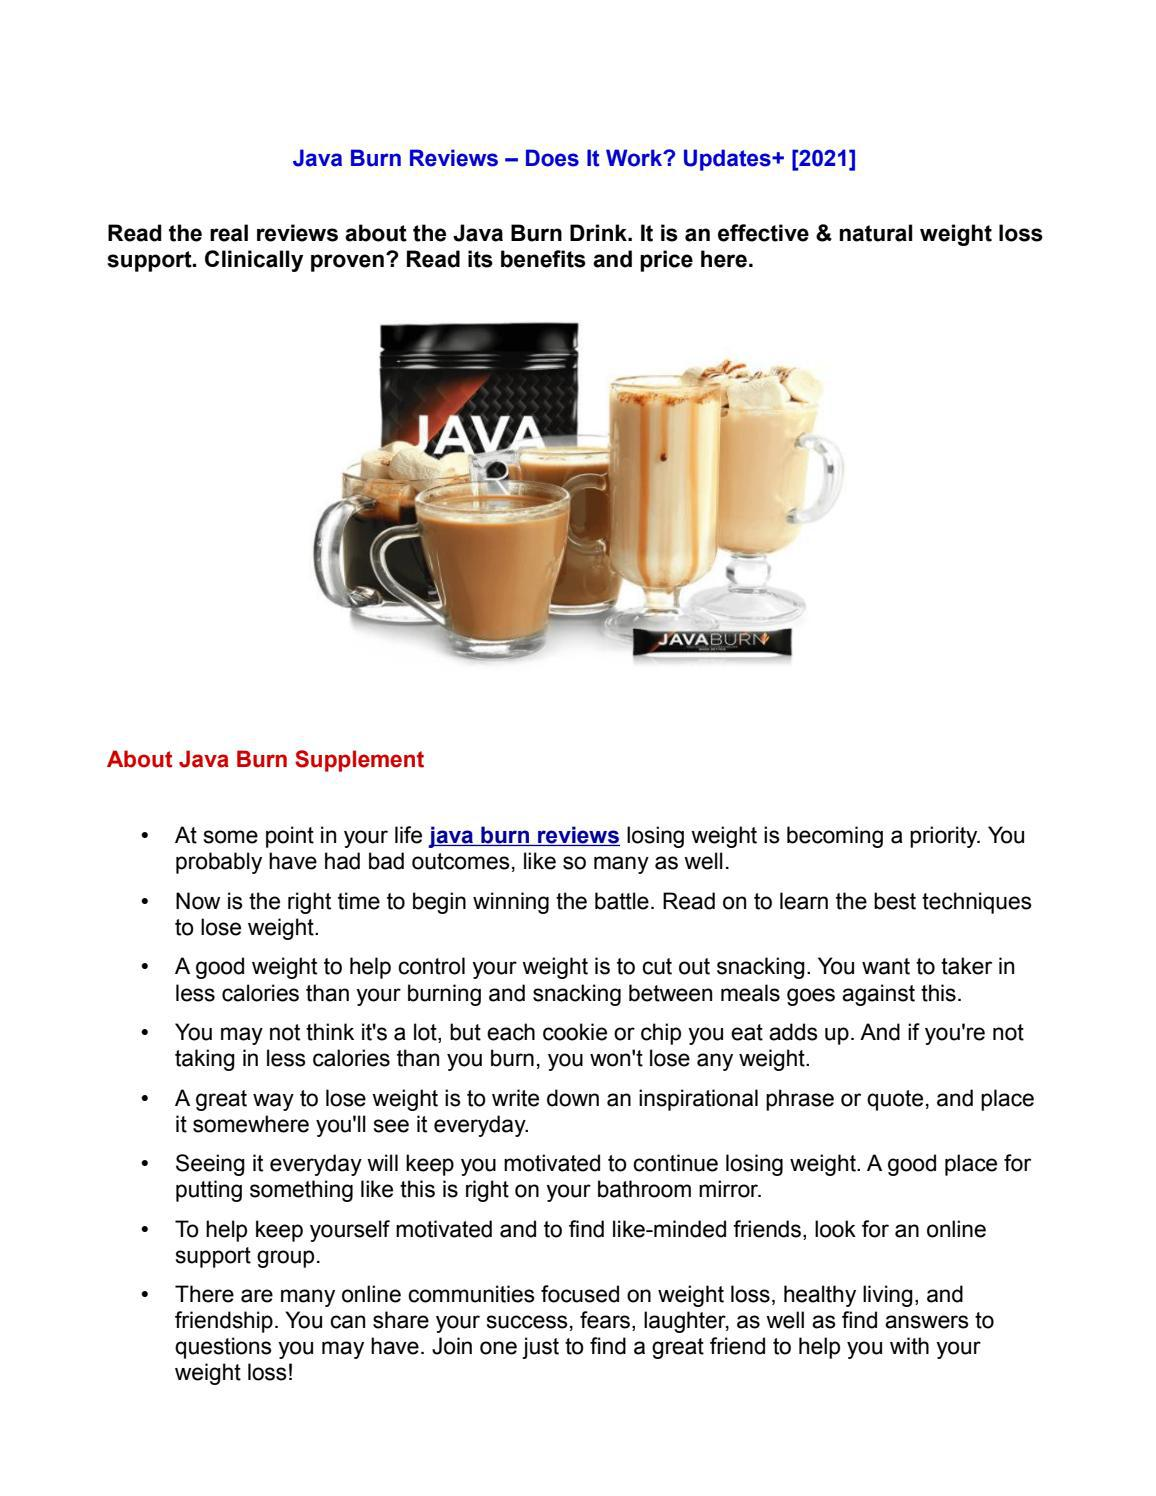 Java Burn Reviews - Is it a Powerful Weight Loss Supplement?